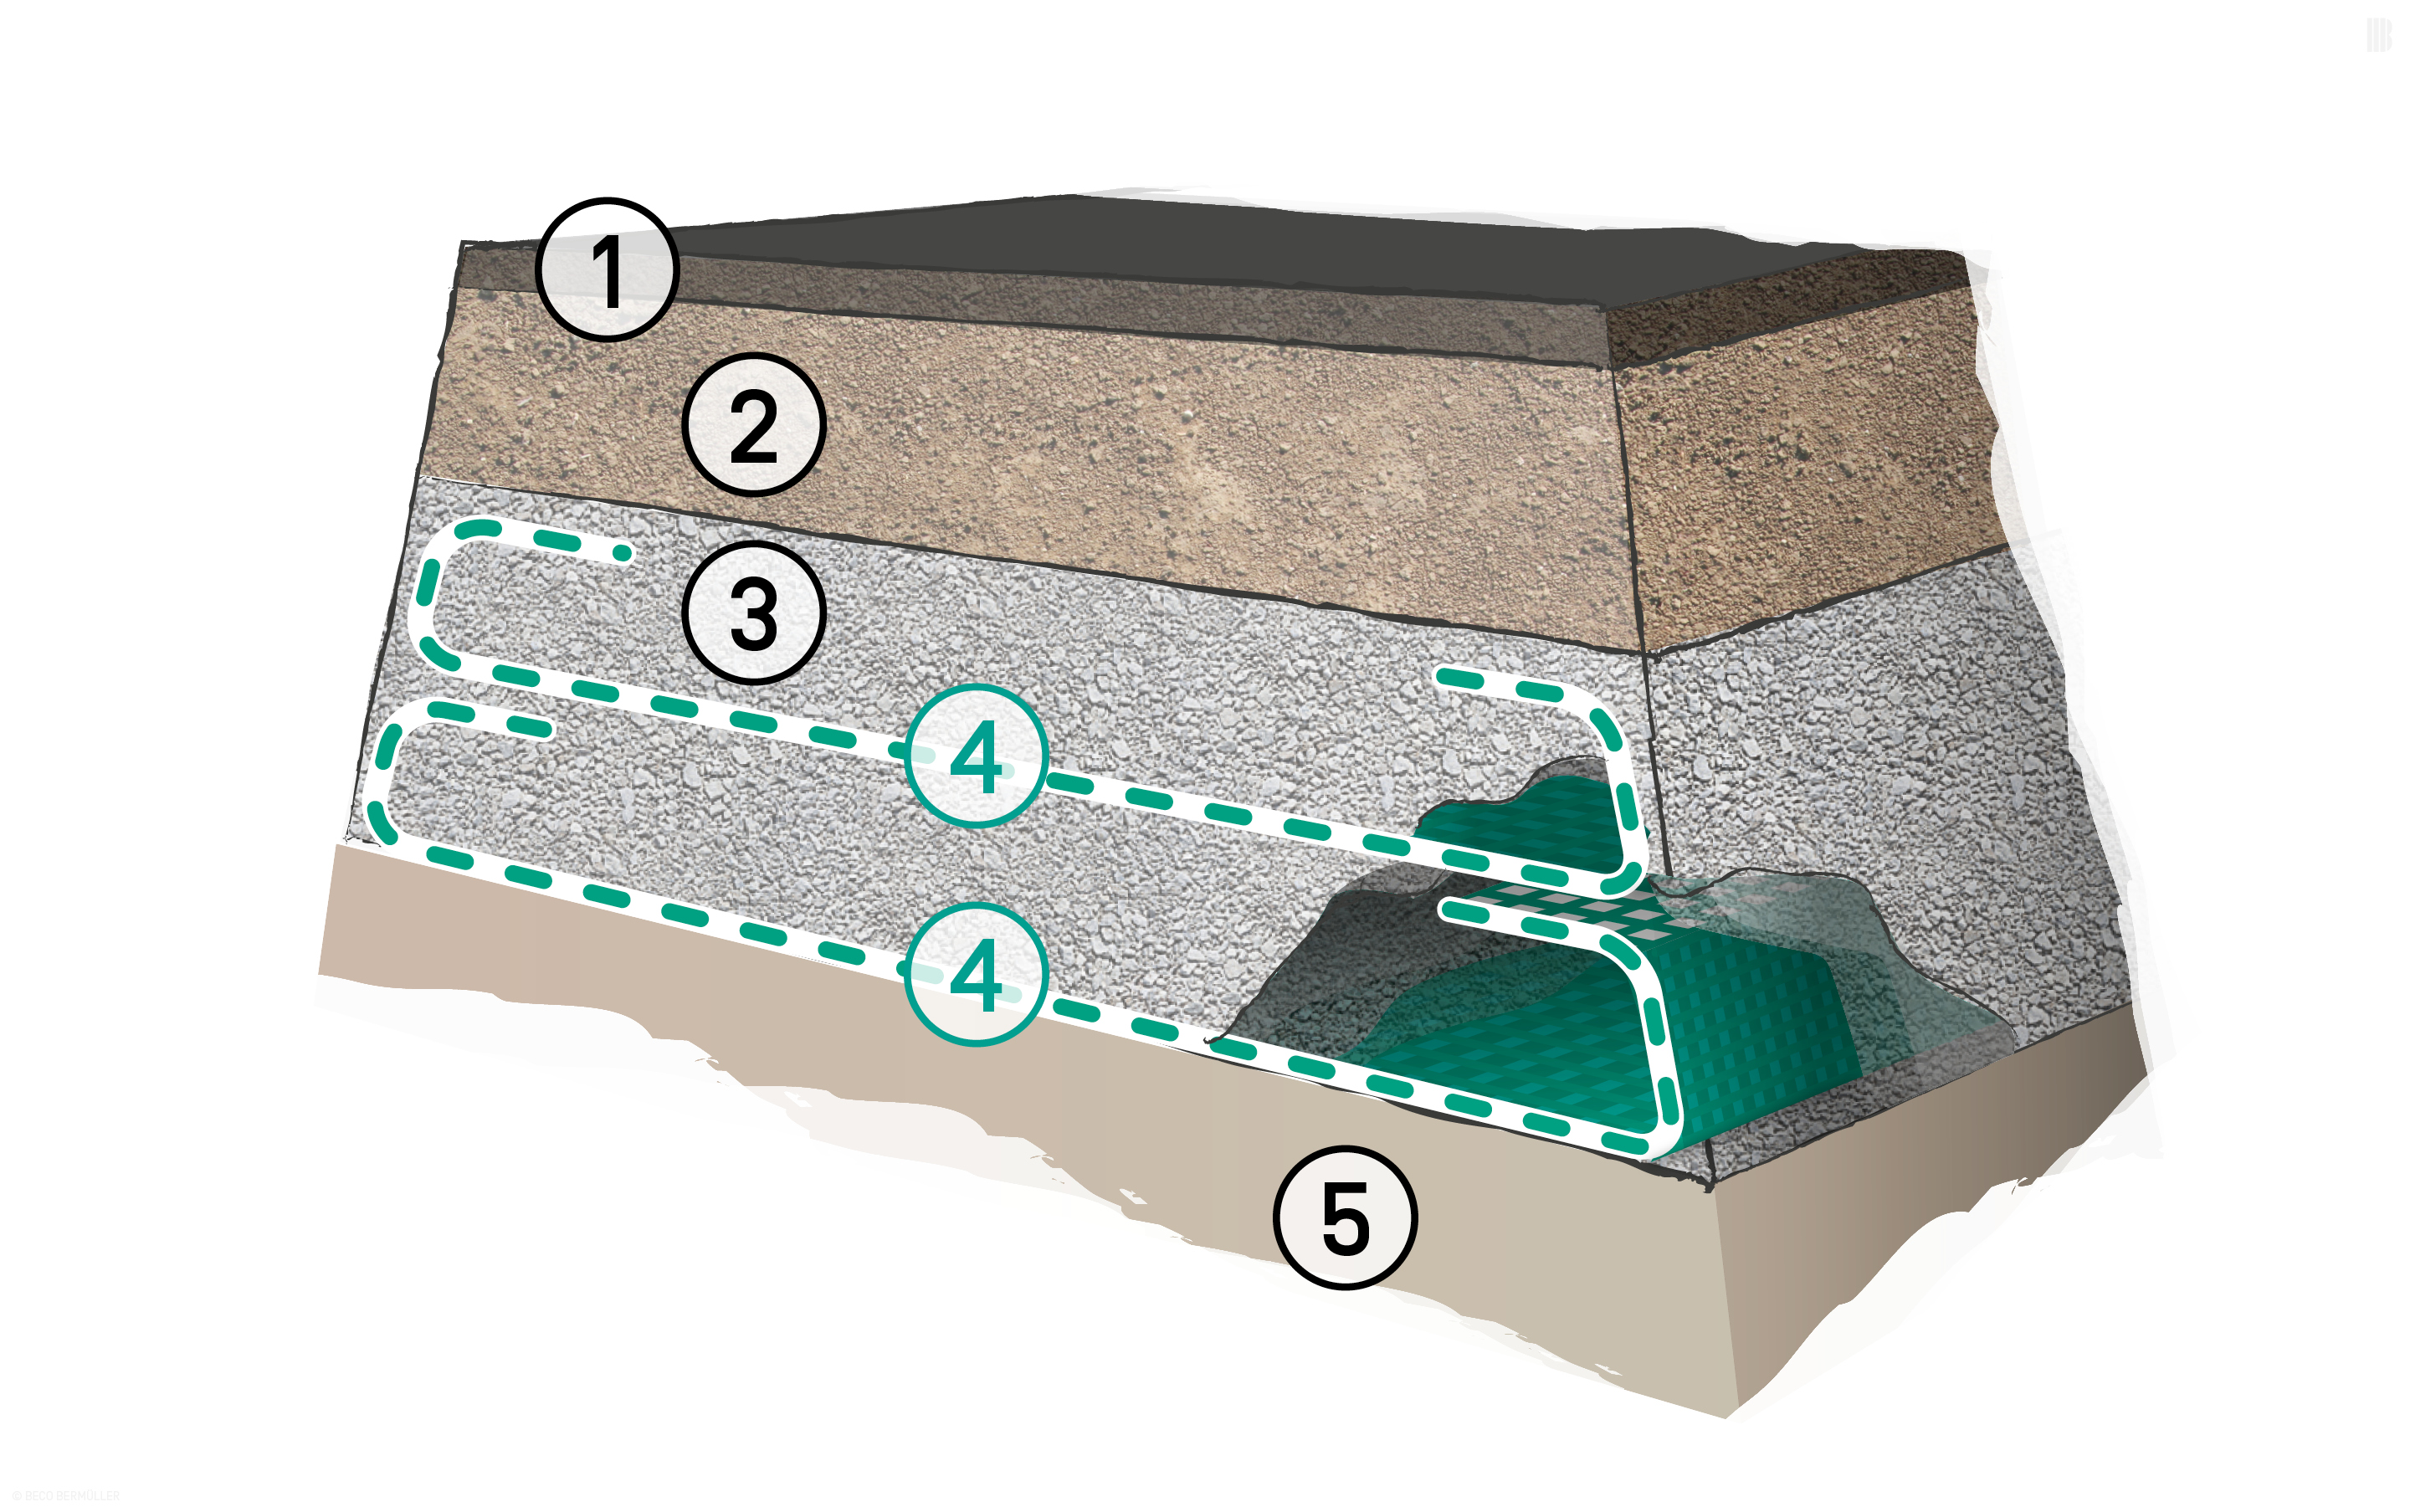 Several reinforcing layers: 1. Bound surface layer | 2. Unbound surface layer | 3. Base layer | 4. BEFORCE Woven Geotextiles | 5. Subsoil with poor load-bearing capacity